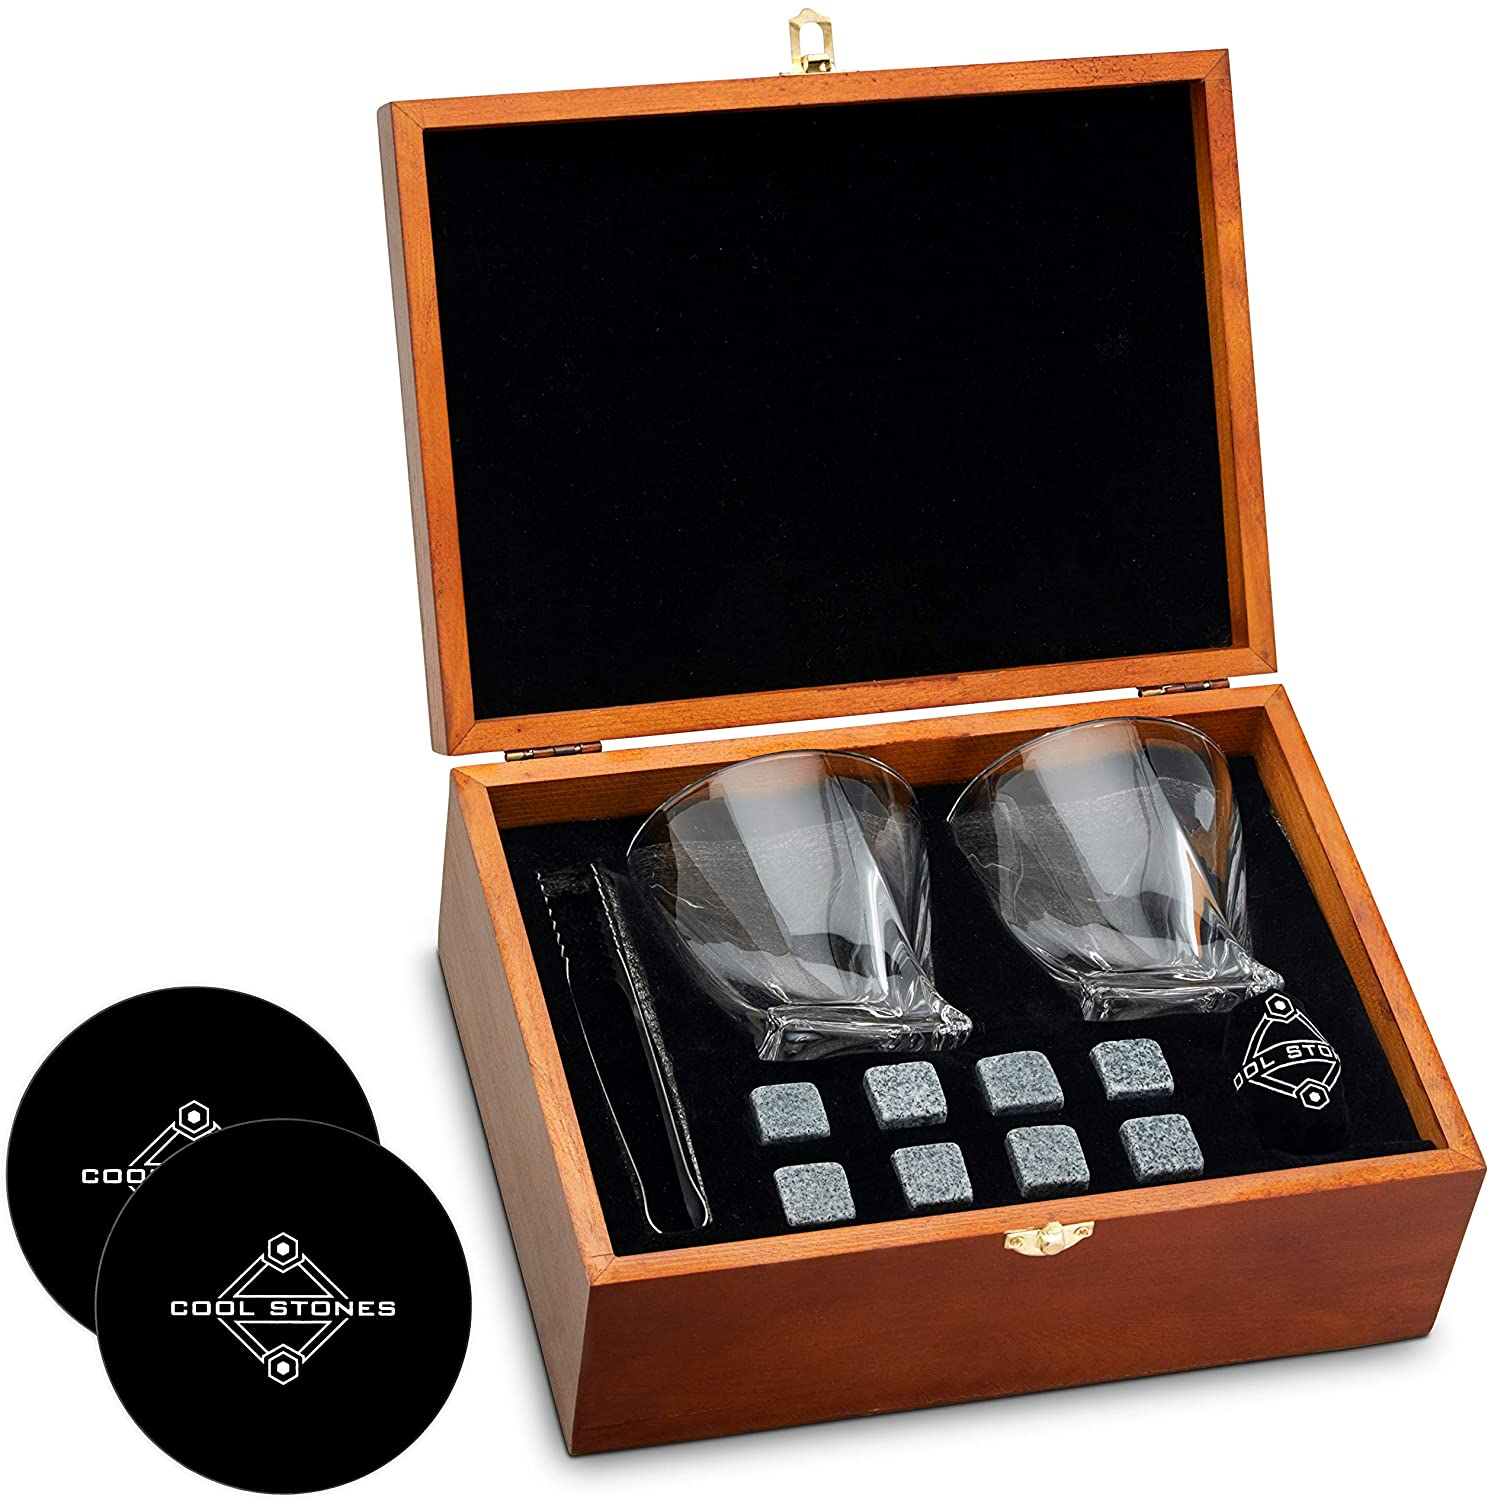 whiskey gift set, valentine's day gifts 2021